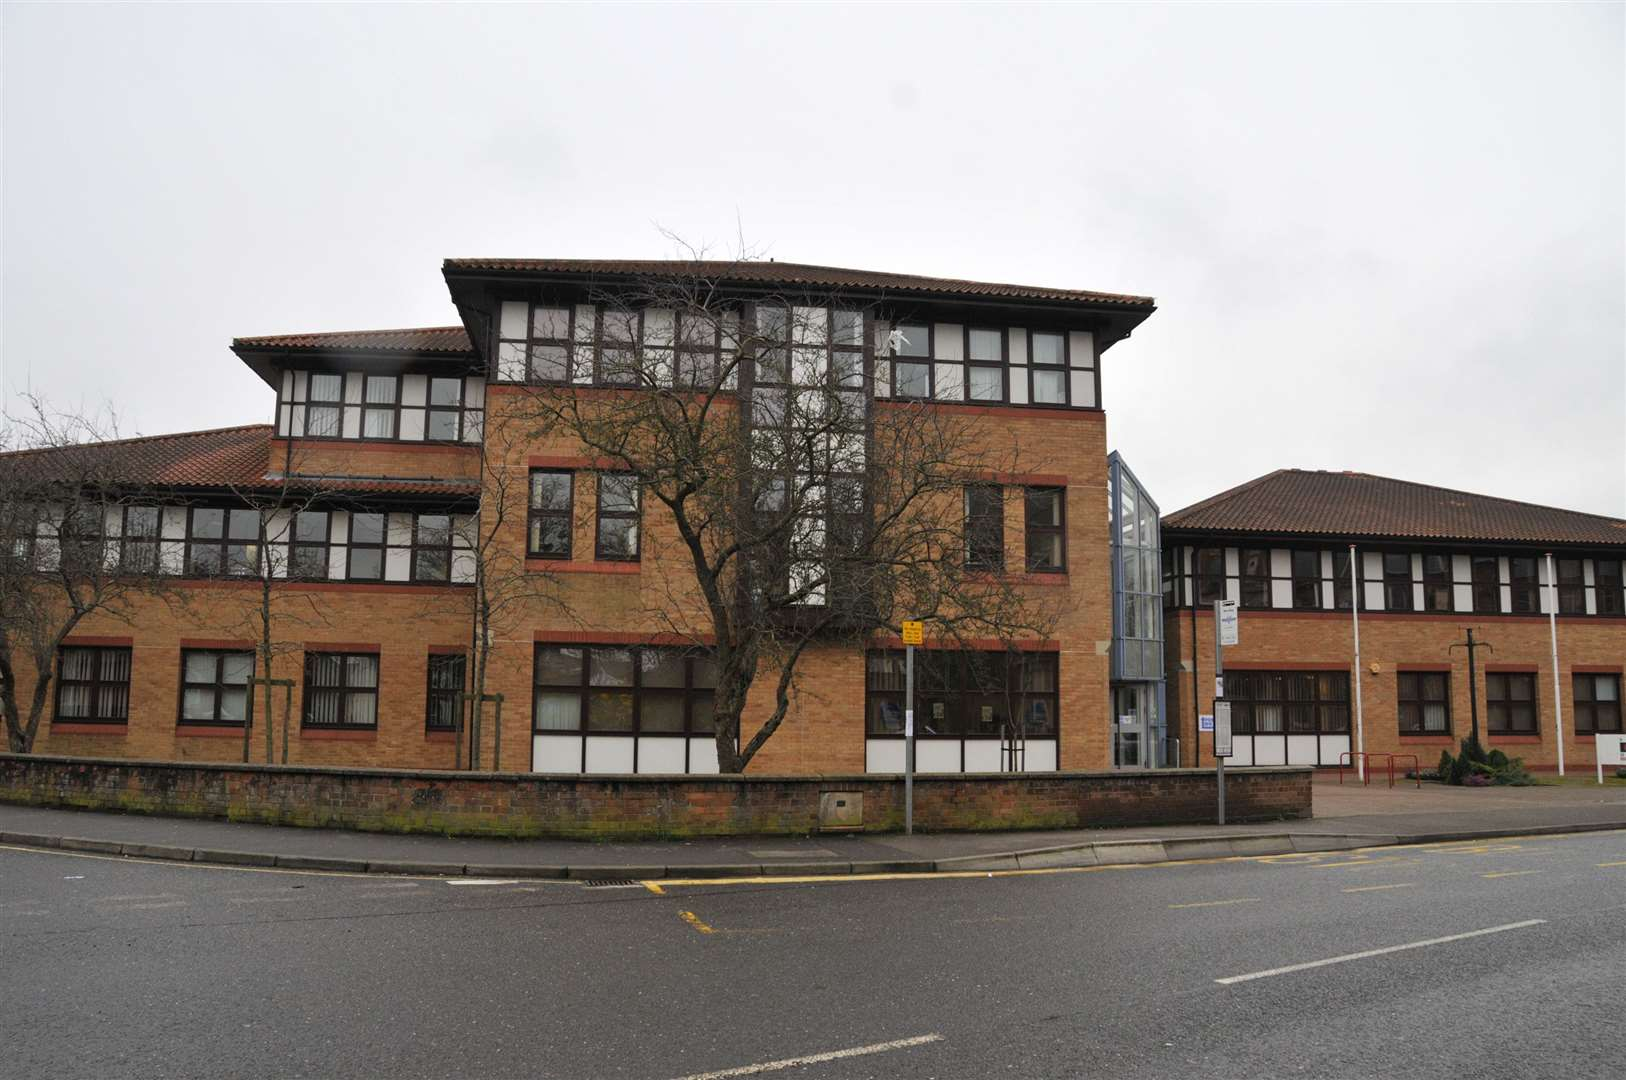 South Holland District Council's offices in Priory Road, Spalding.